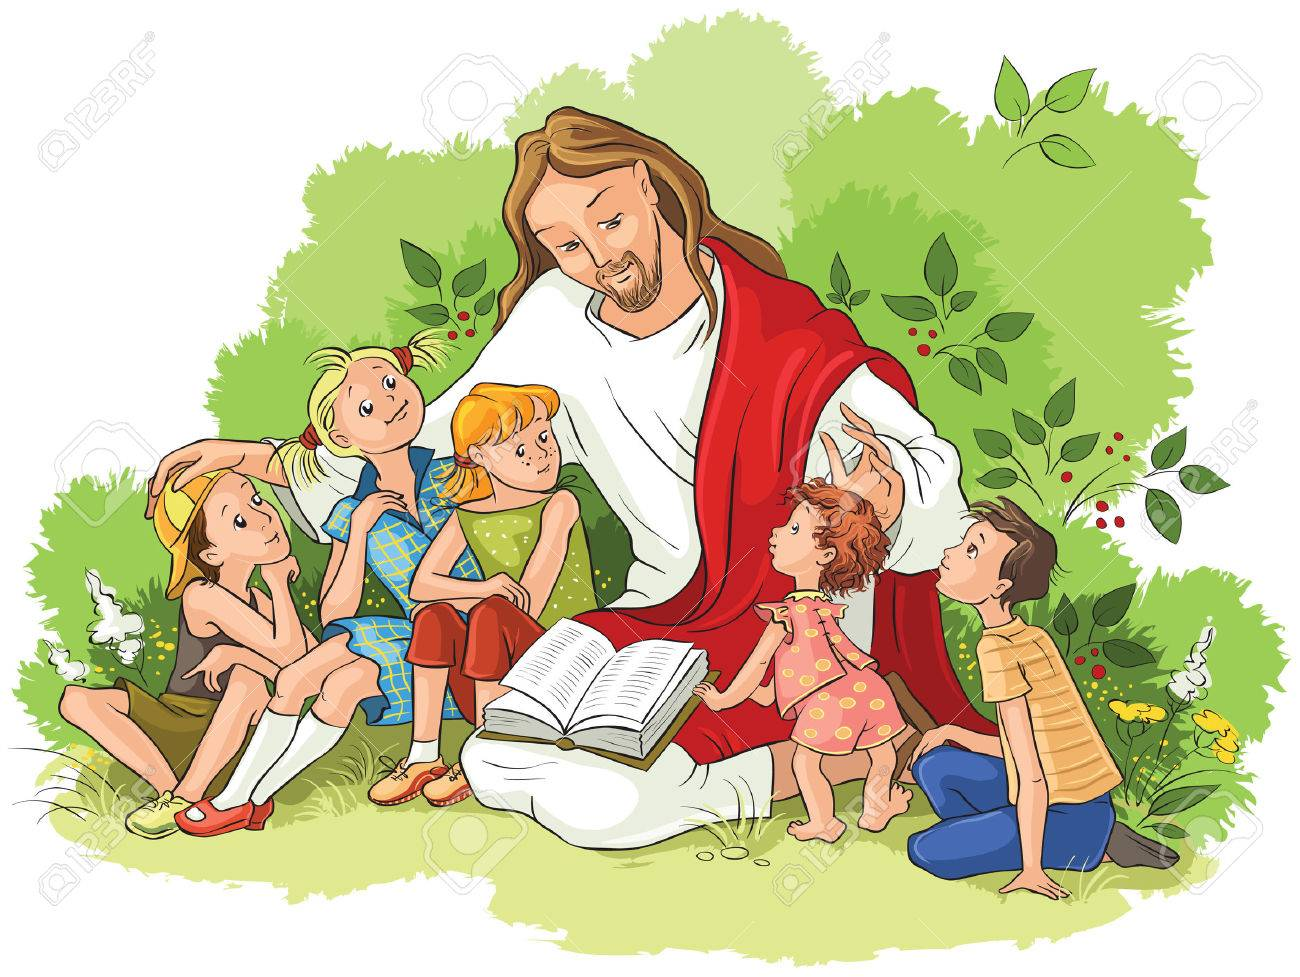 Jesus reading the Bible to children - 80017004